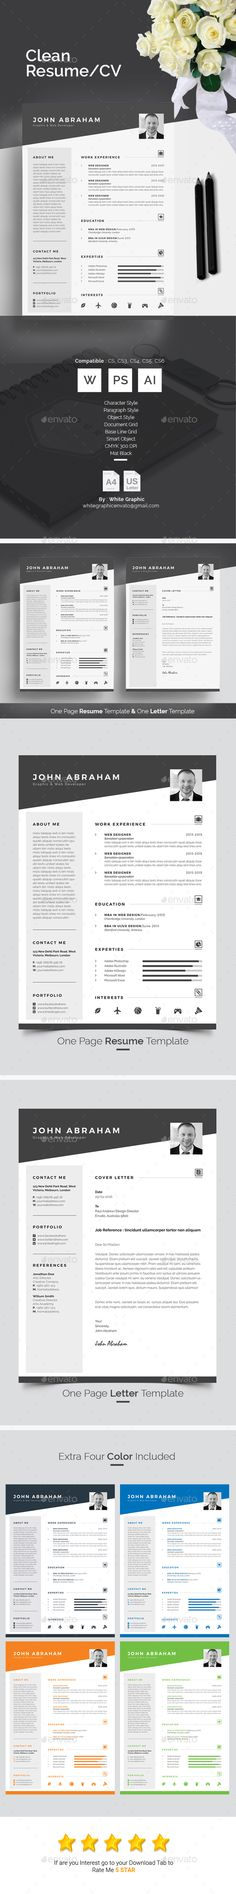 Infographic Resume Bundle Infographic resume, Infographic and - resume layout template